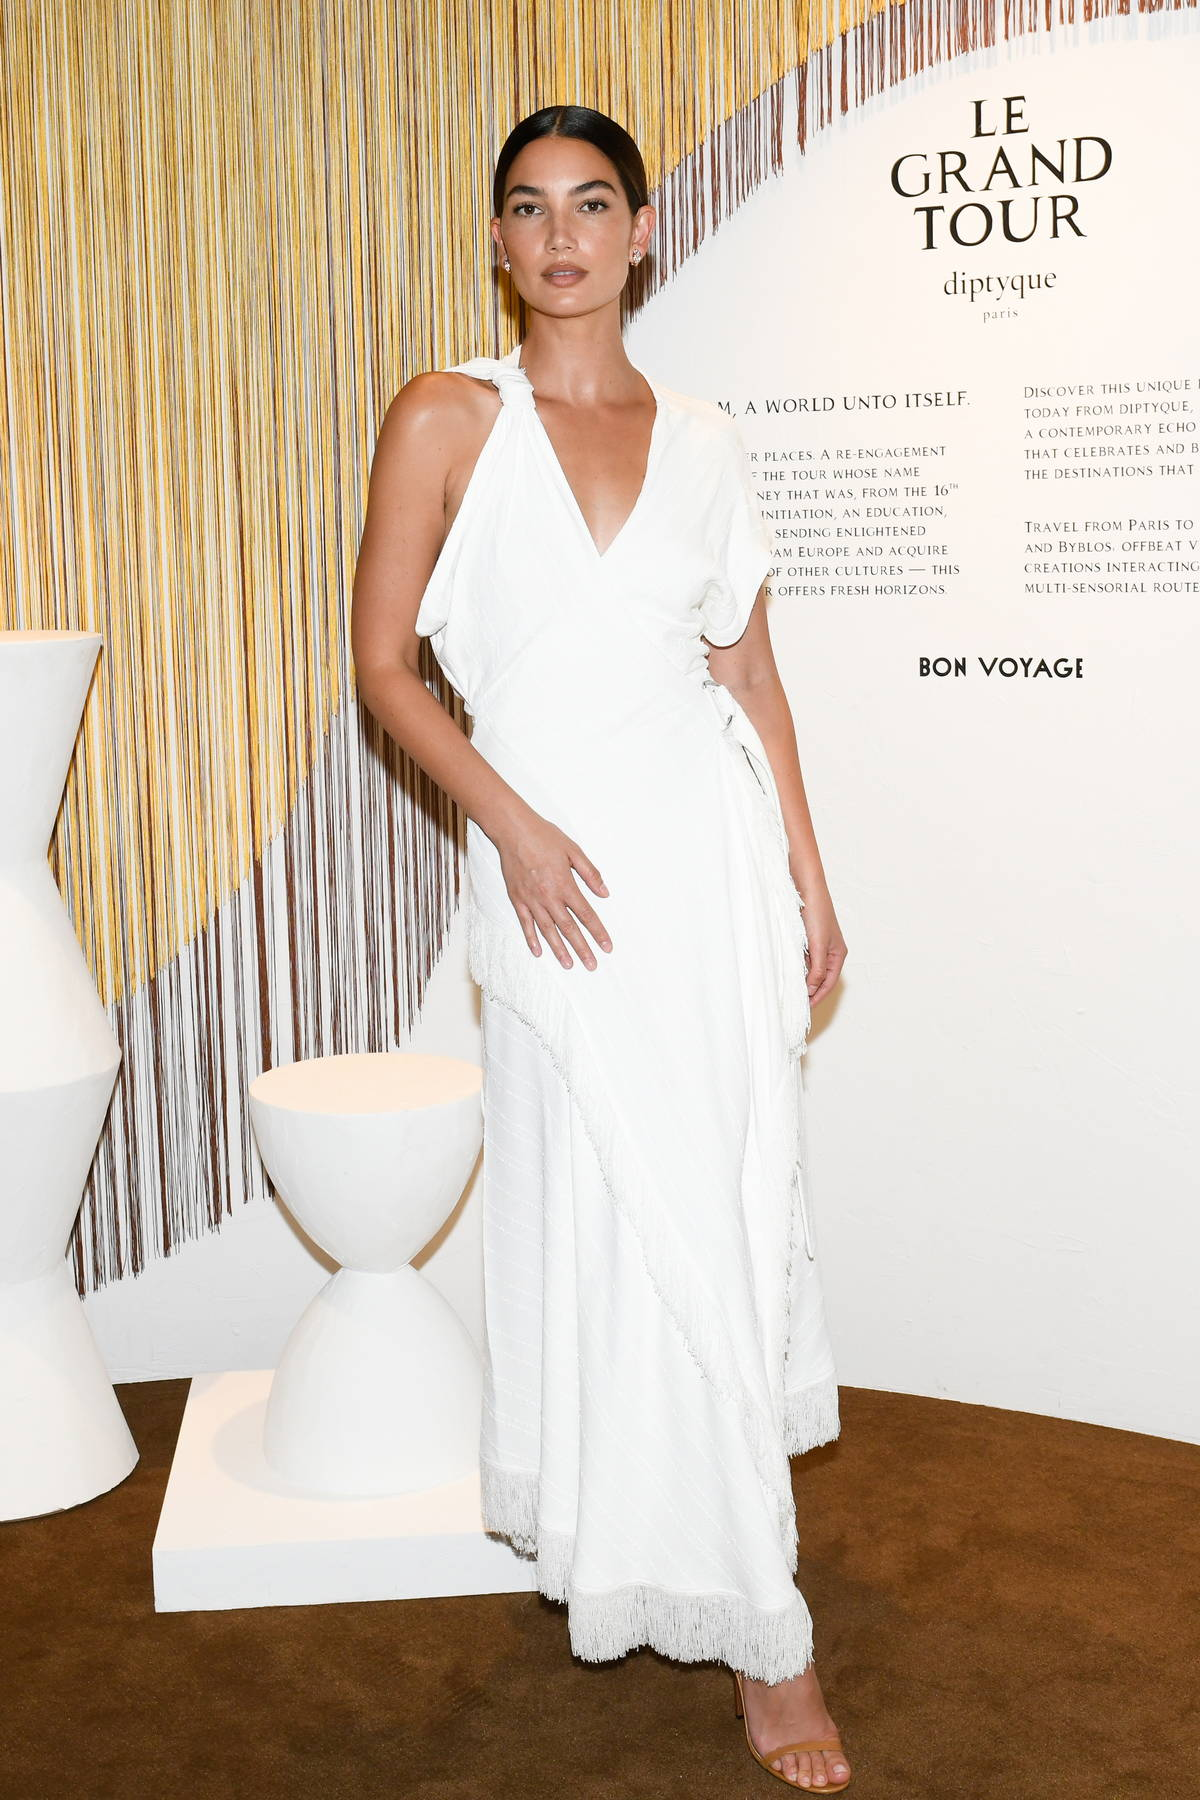 Lily Aldridge attends Diptyque's Le Grand Tour Opening Event in New York City